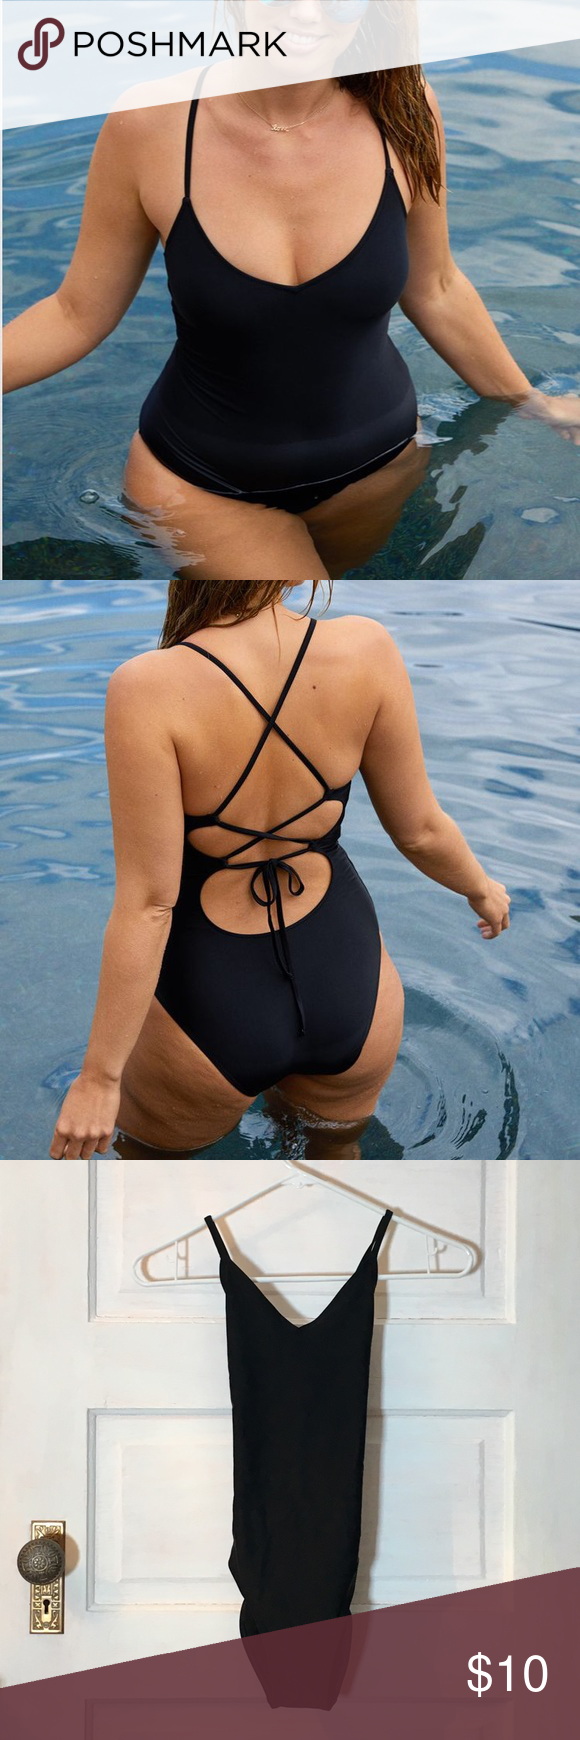 2367ee1272 🌻(aerie) one piece swimsuit Black one piece swimsuit with fun zig-zag  straps in the back. Straps can be tightened to best fit you! aerie Swim One  Pieces